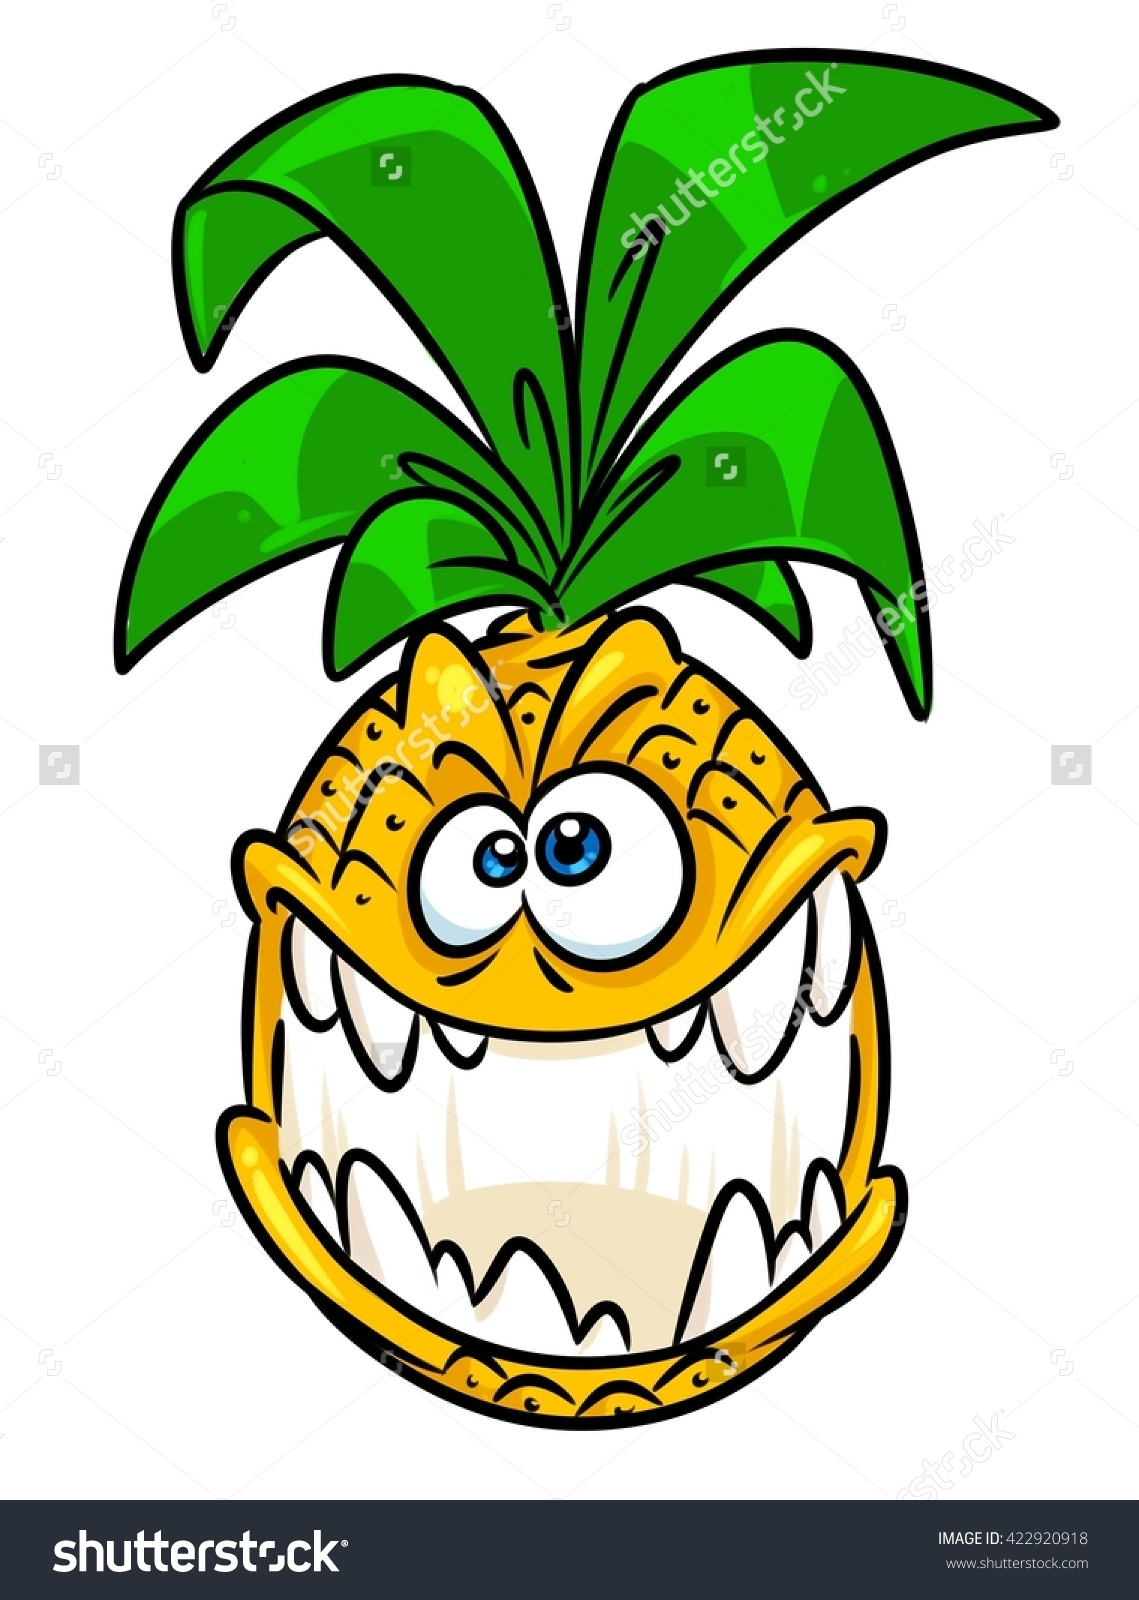 Of the wild fruits clipart #15